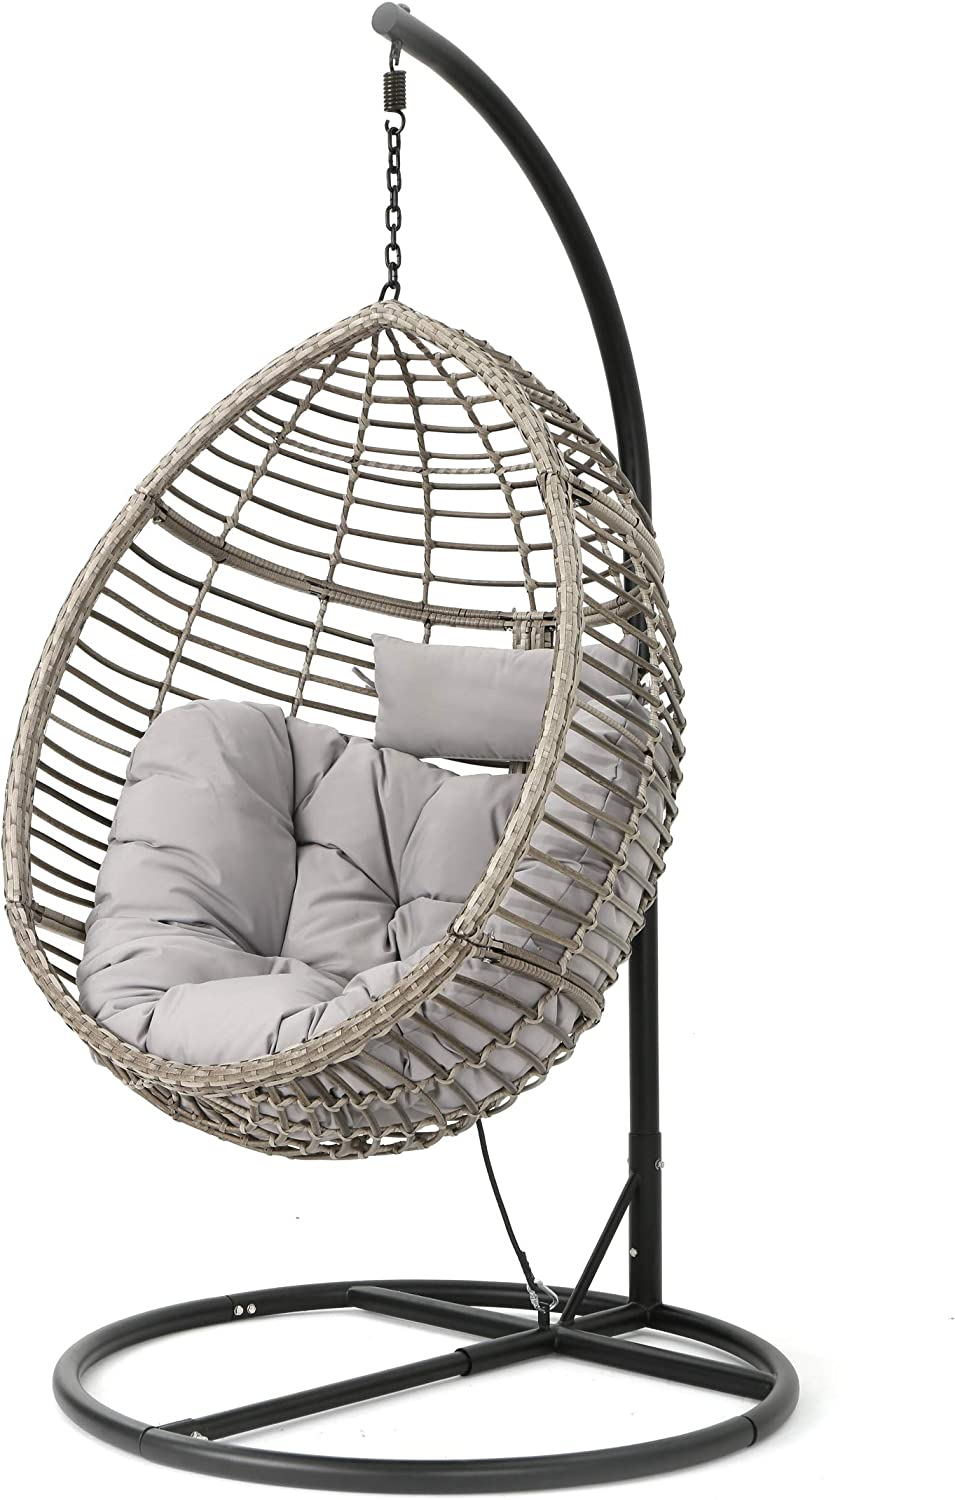 Amazon Com Christopher Knight Home Leasa Outdoor Wicker Hanging Basket Chair With Water Resistant Cushions And Iron Base Grey Black Garden Outdoor